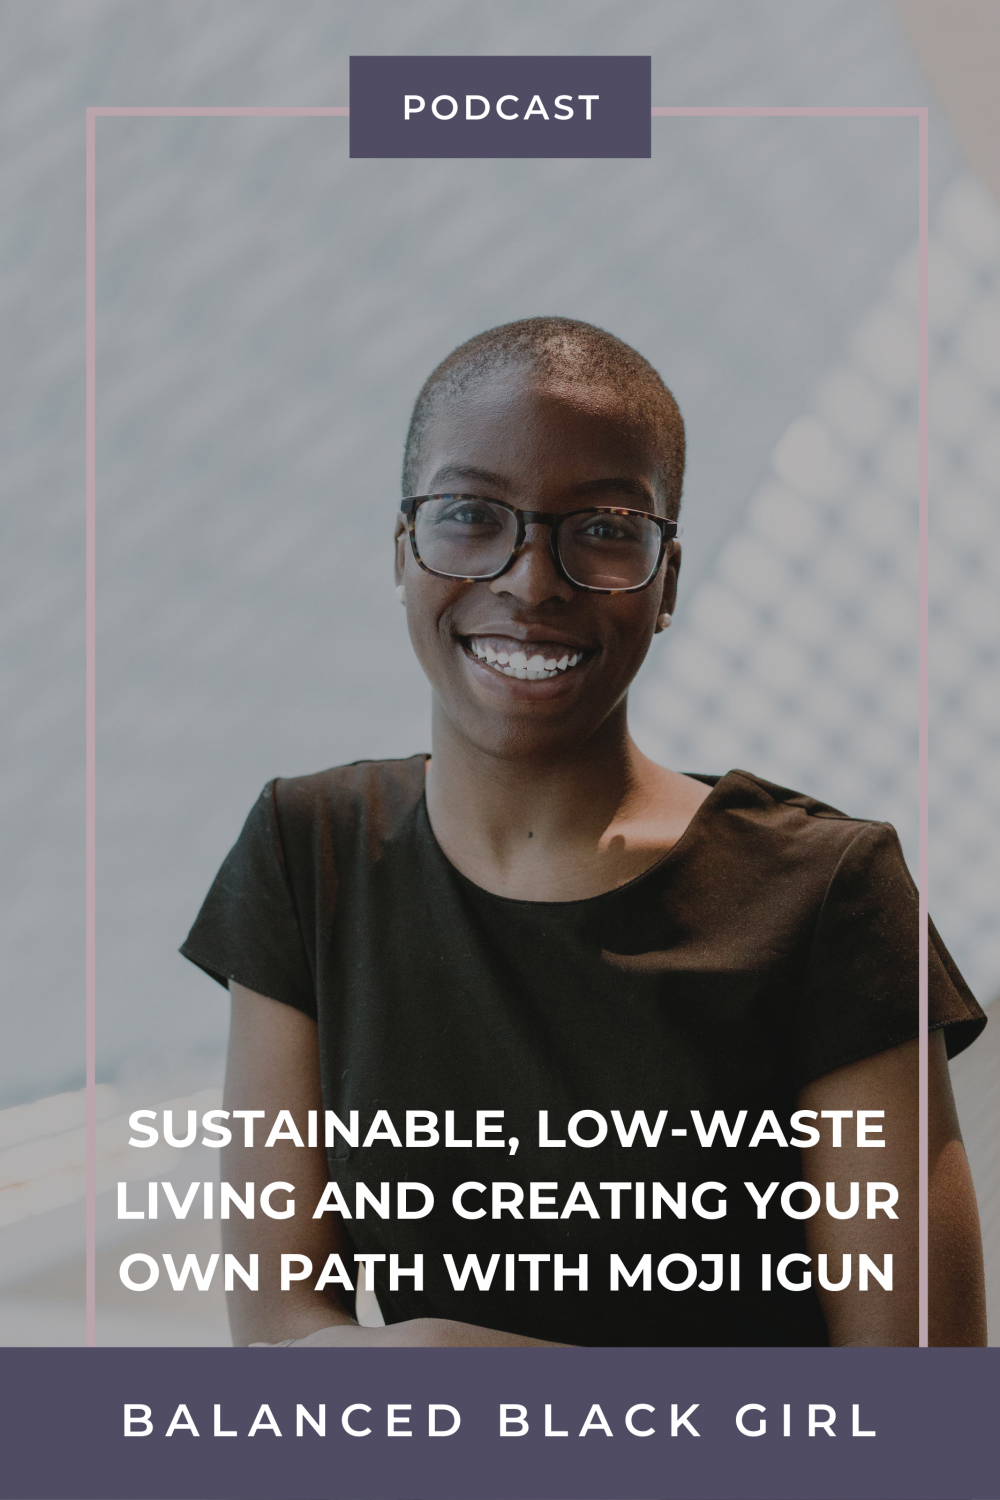 Episode #40: Low-Waste Living and Creating Your Own Path with Moji Igun